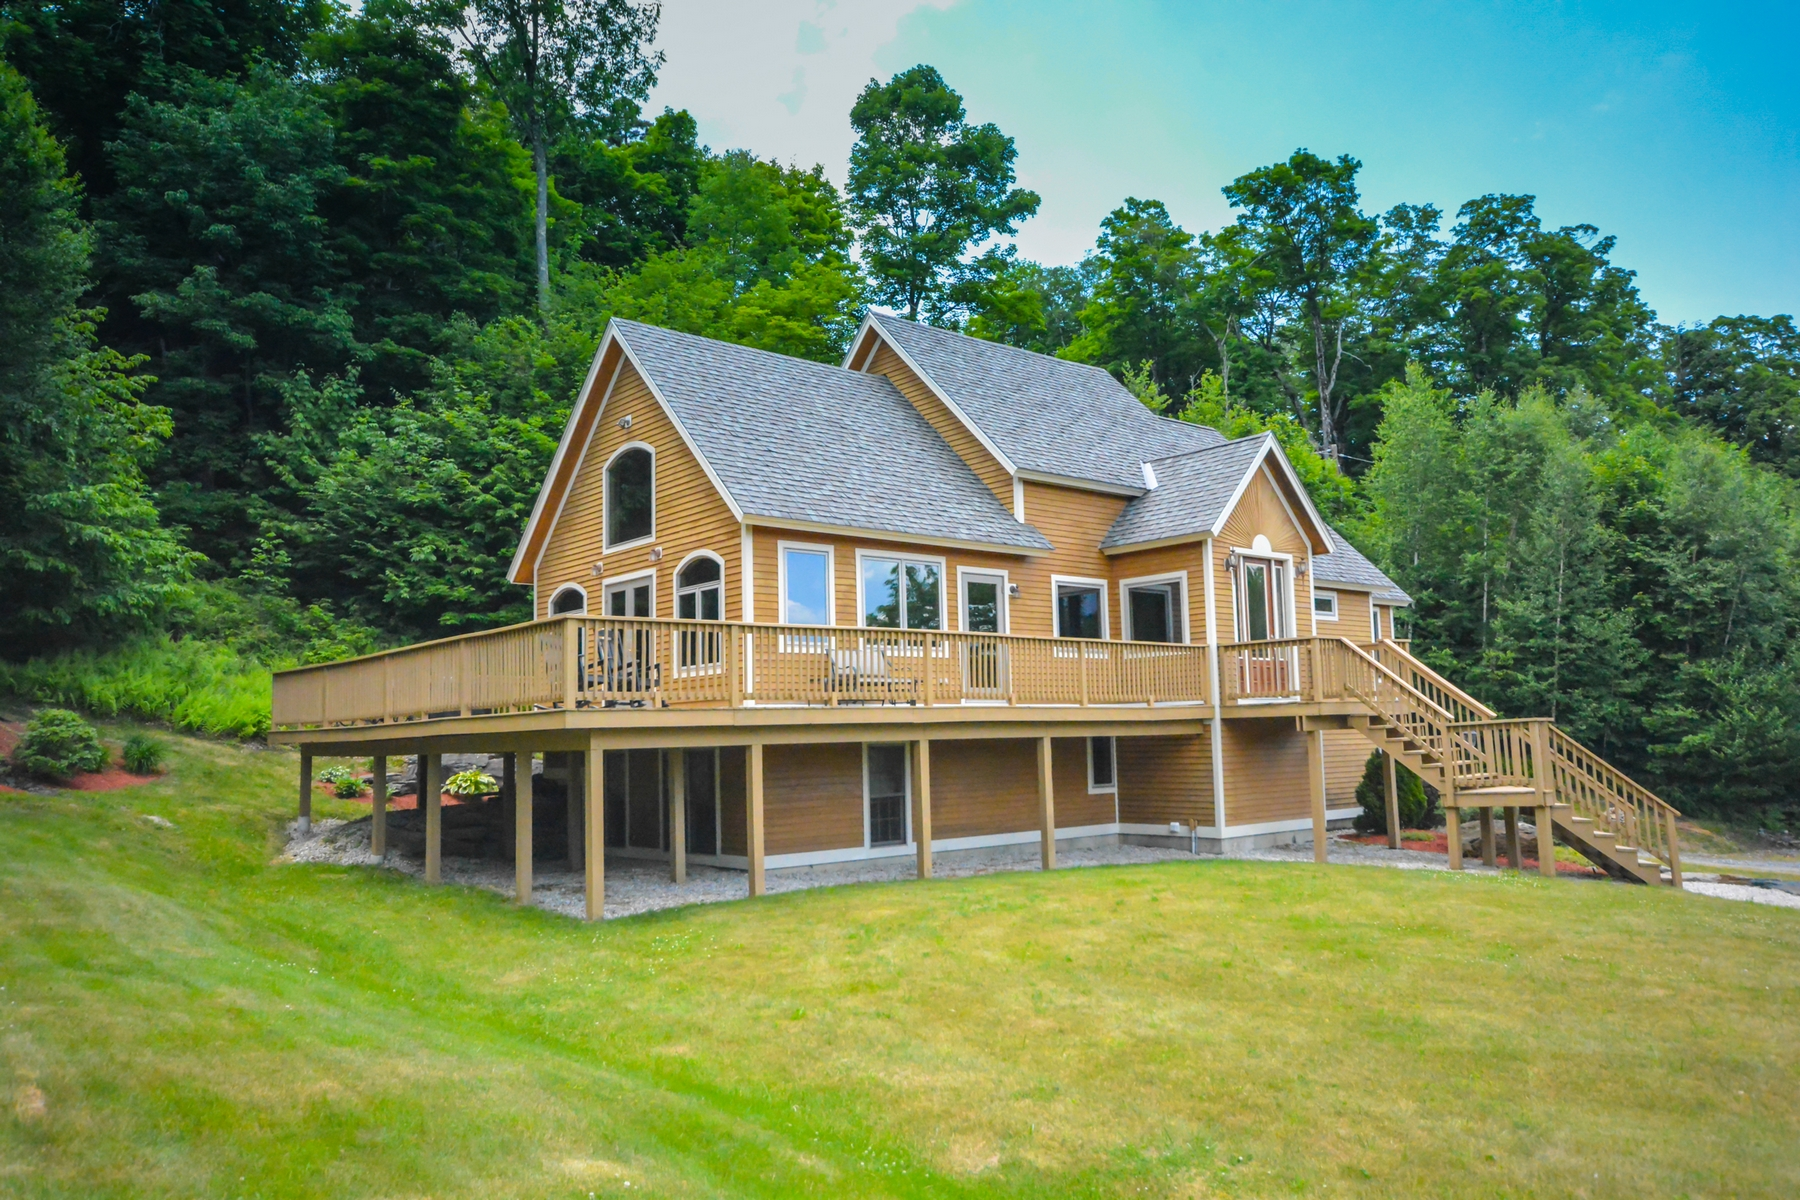 Single Family Home for Sale at Immaculate Dover Hills Home 36 Harris Rd Dover, Vermont, 05356 United States